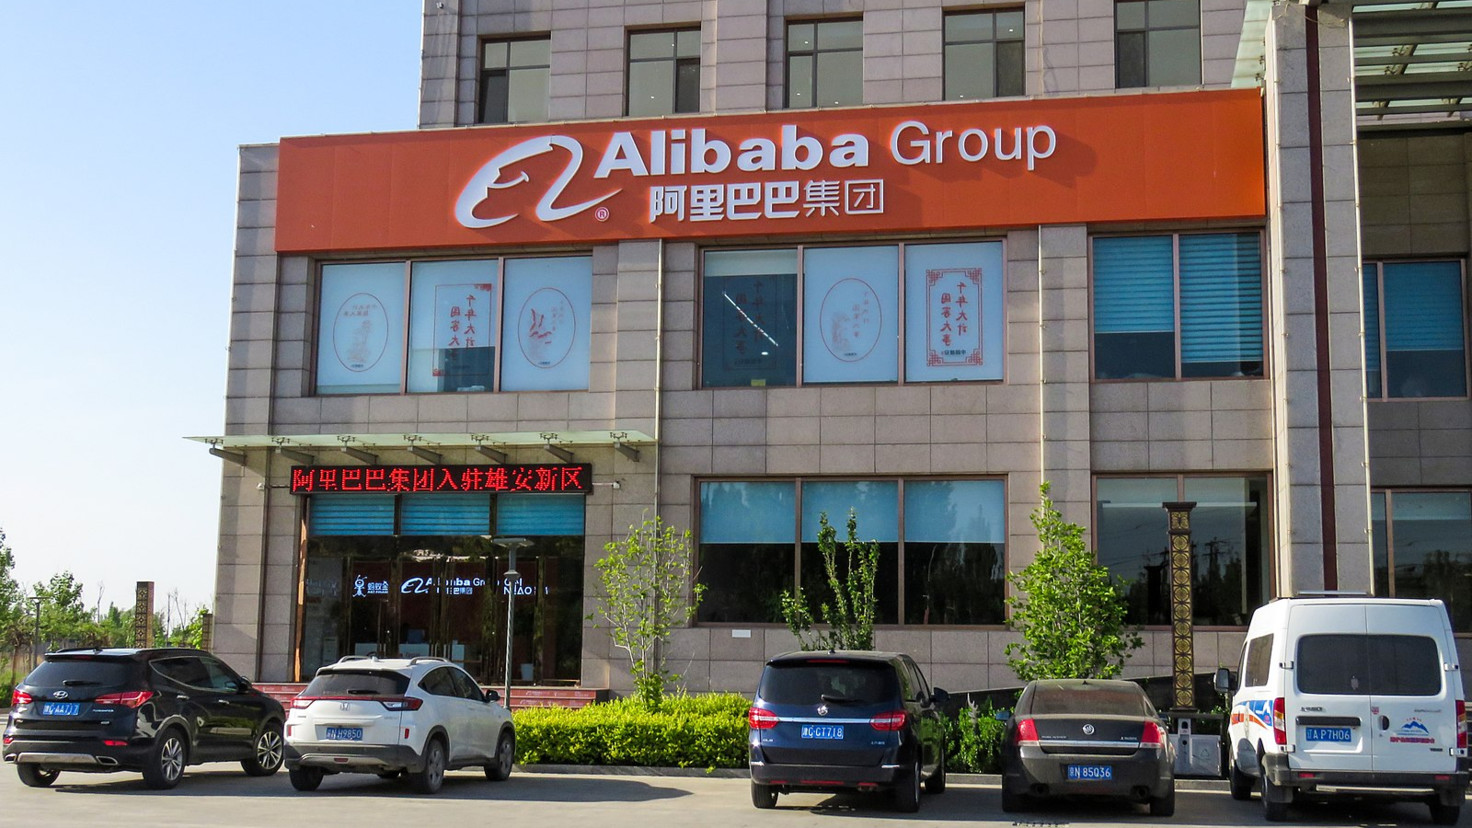 Alibaba shows strong performance in Q2 2019 despite the trade war